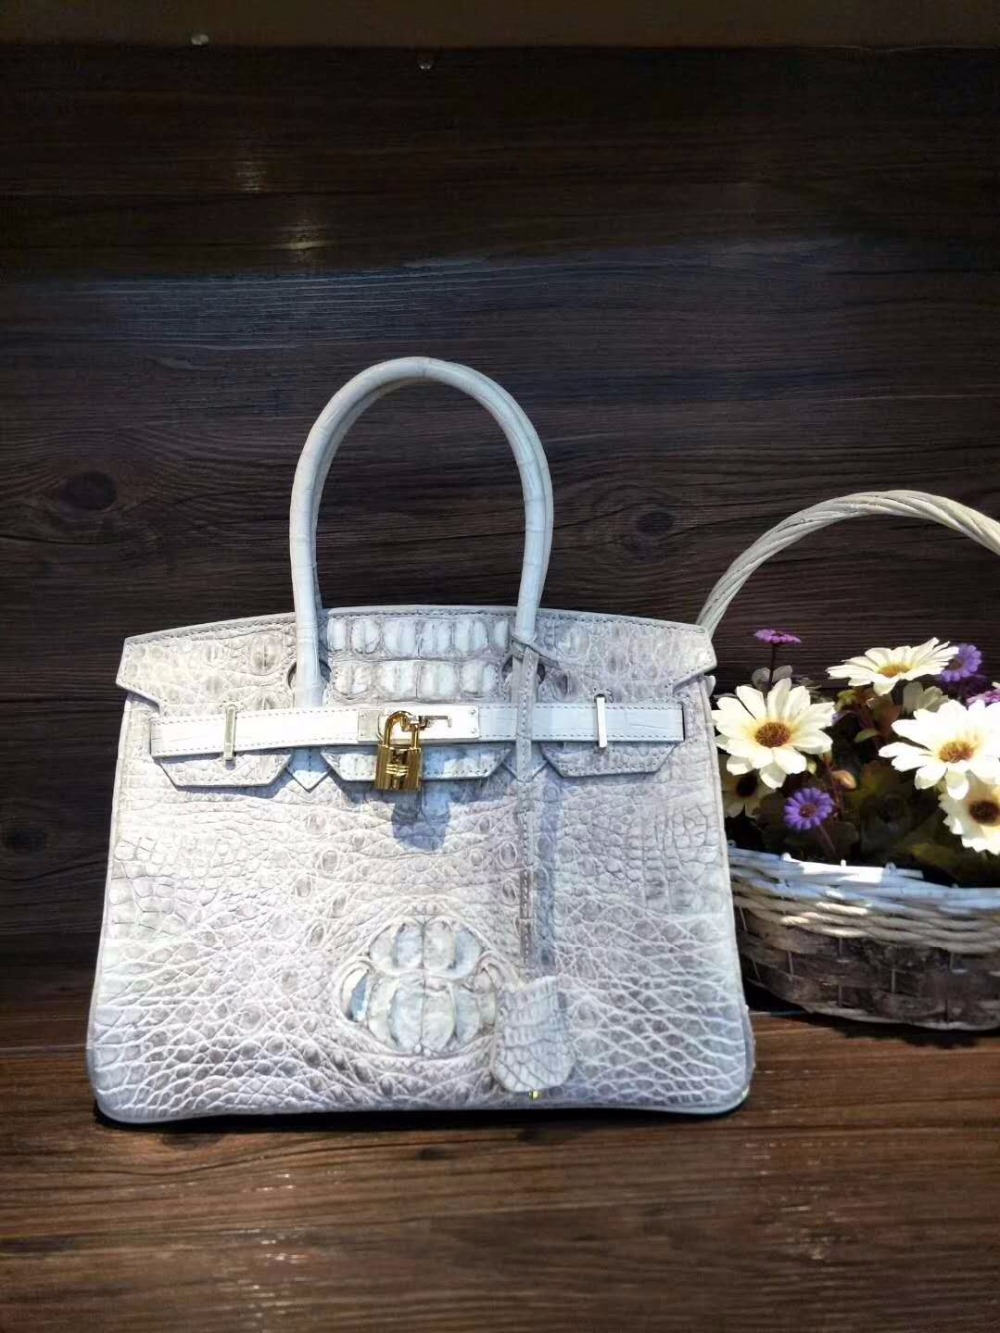 2018 fashion Himalaya white Crocodile head skin Leather Tote Top-handle women Handbag 100% Real/Genuine Crocodile Skin lady bag 2018 fashion genuine real crocodile skin